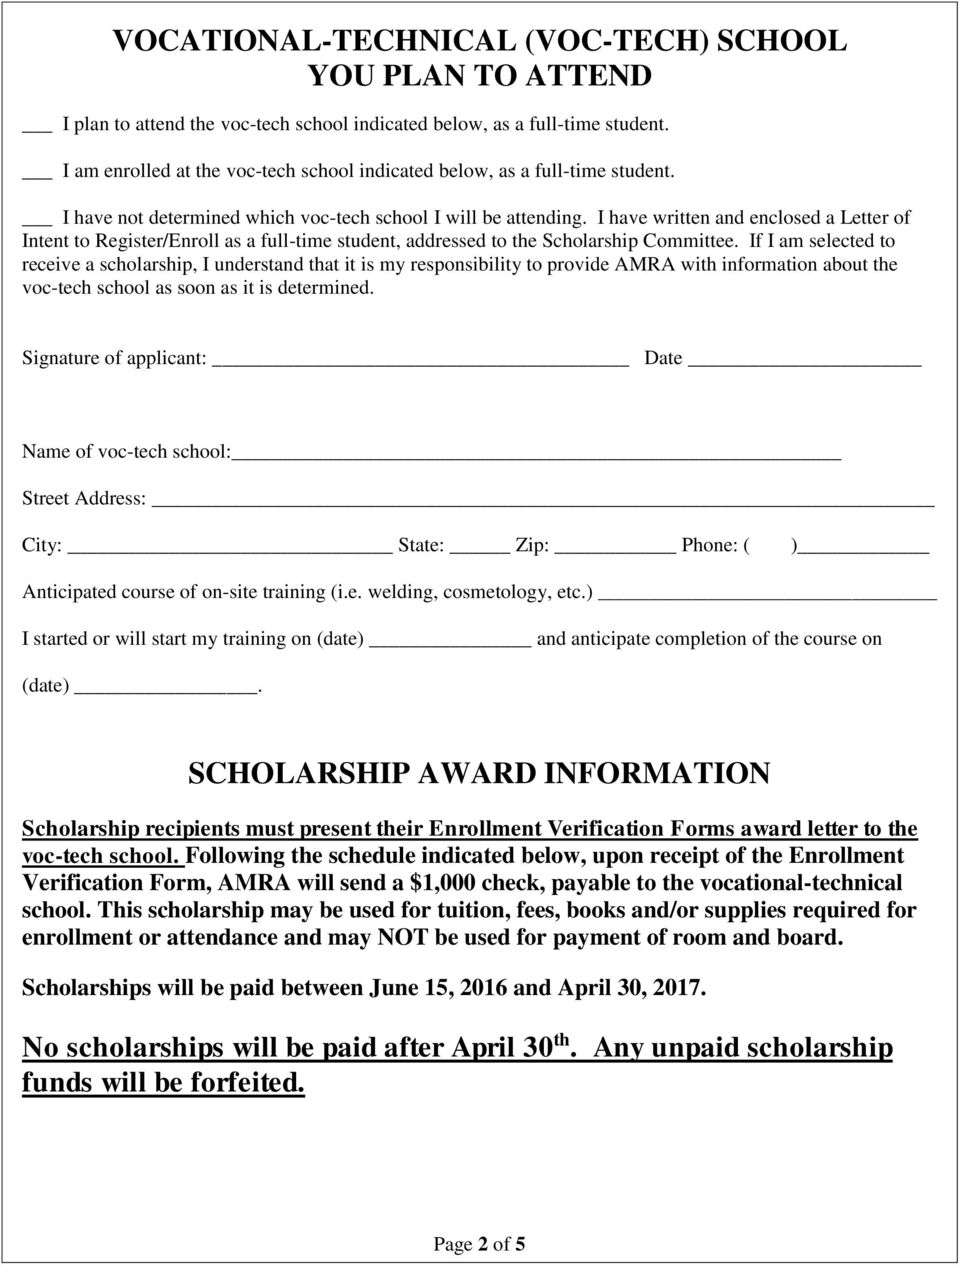 I have written and enclosed a Letter of Intent to Register/Enroll as a full-time student, addressed to the Scholarship Committee.